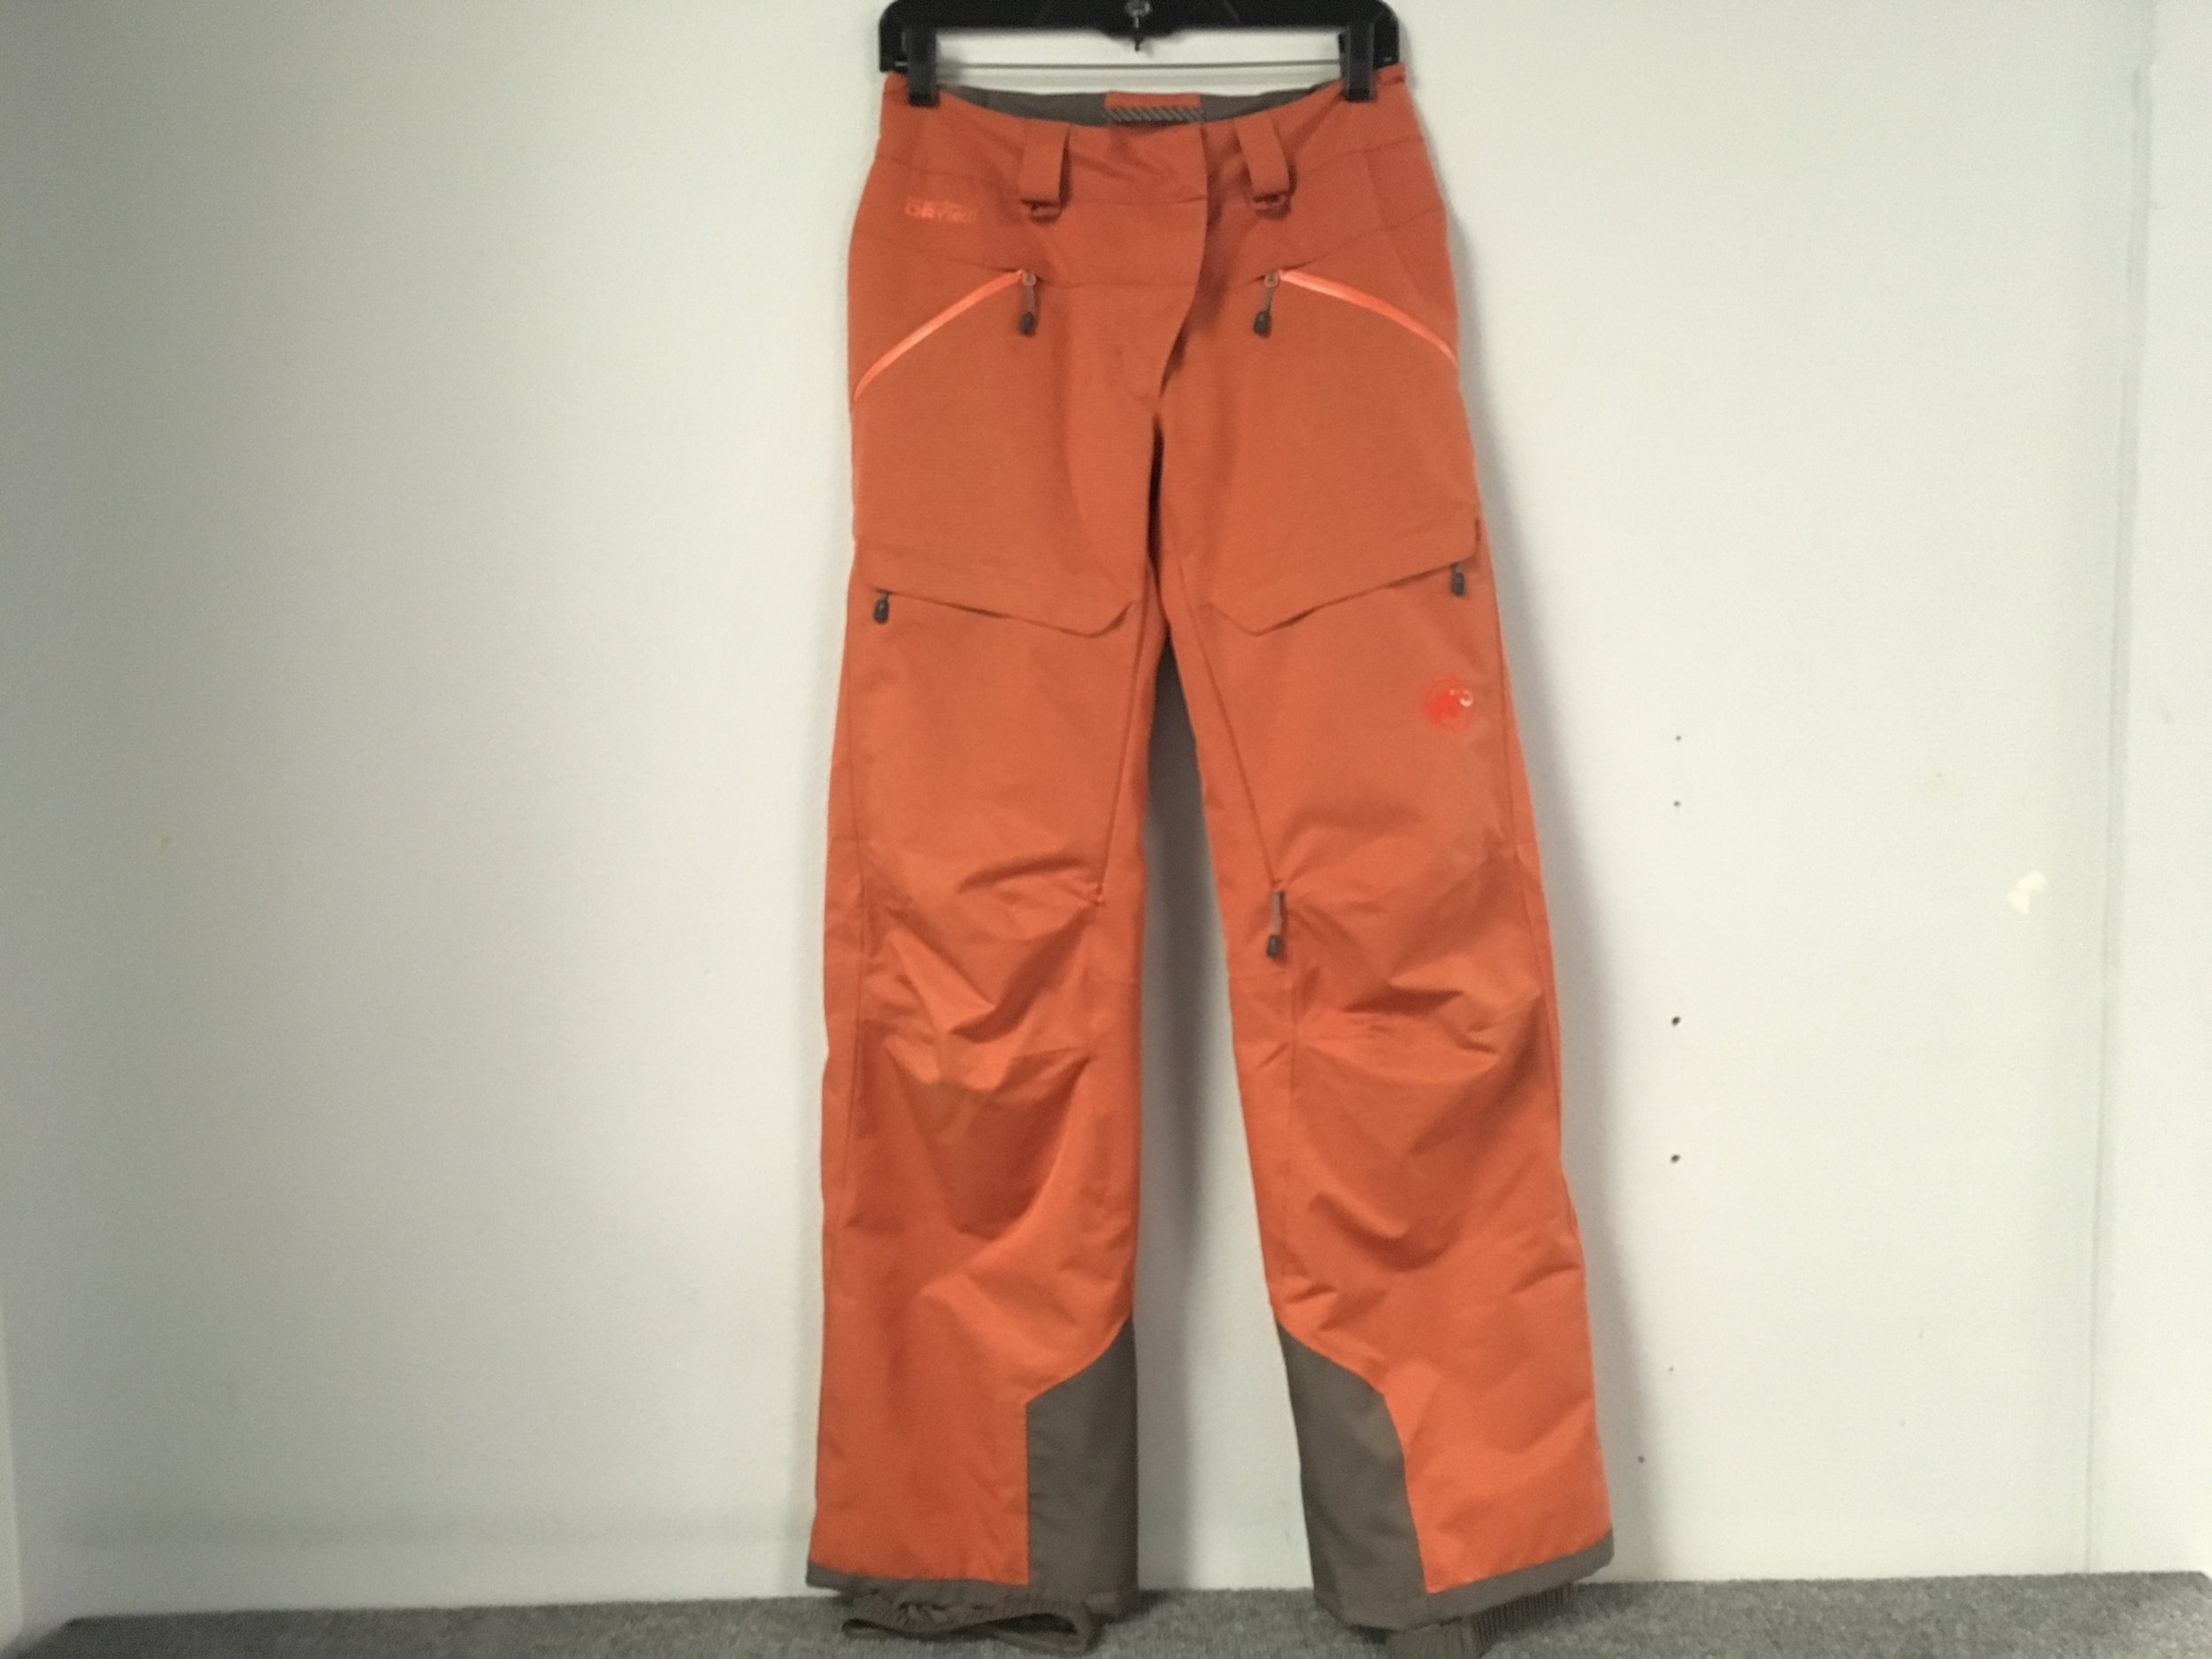 For all of you Village rat's out there, Mammut's Robella pant will keep warm and dry from bell to bell. Retail for the pant is listed at $250 but we got you covered at $119! The size is a women's 4.